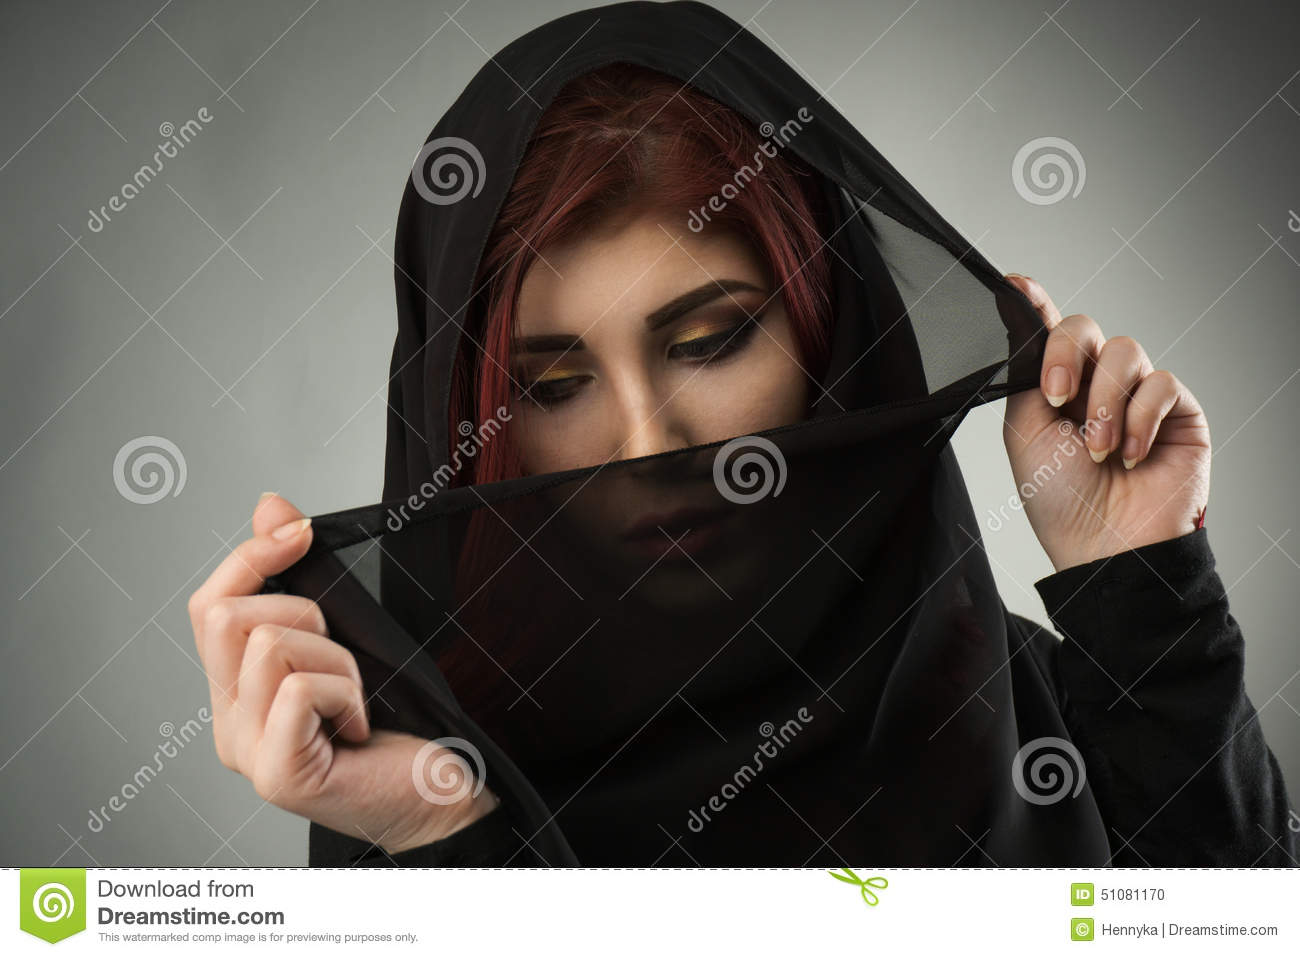 the women covered by a veil